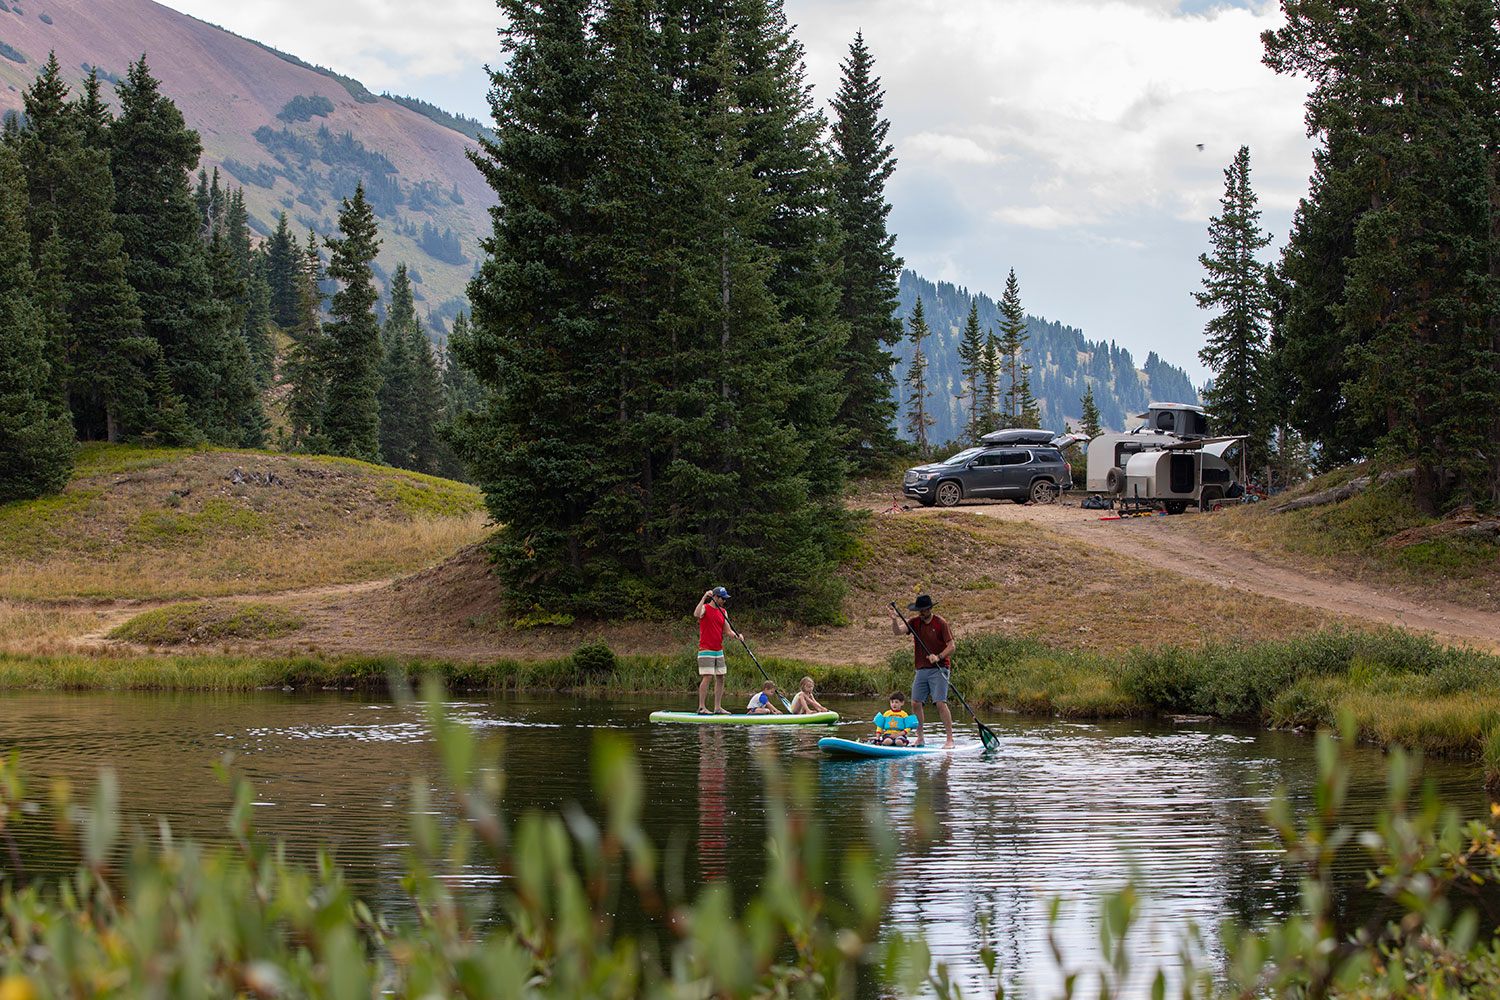 Kayaks & Stand-Up Paddle Boards -